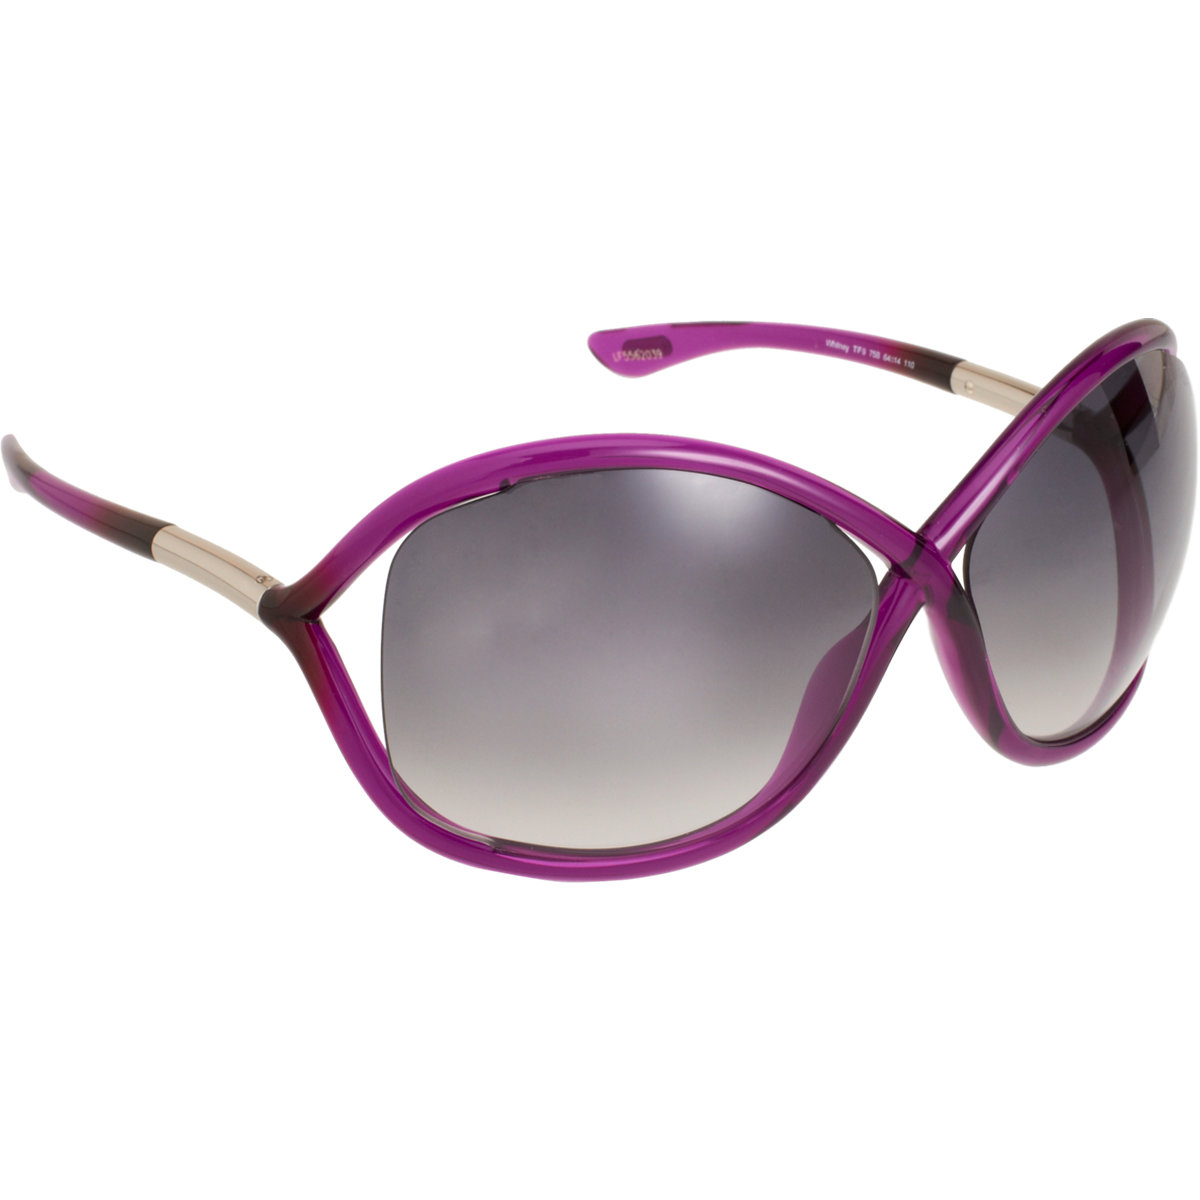 tom ford whitney sunglasses in purple lyst. Black Bedroom Furniture Sets. Home Design Ideas